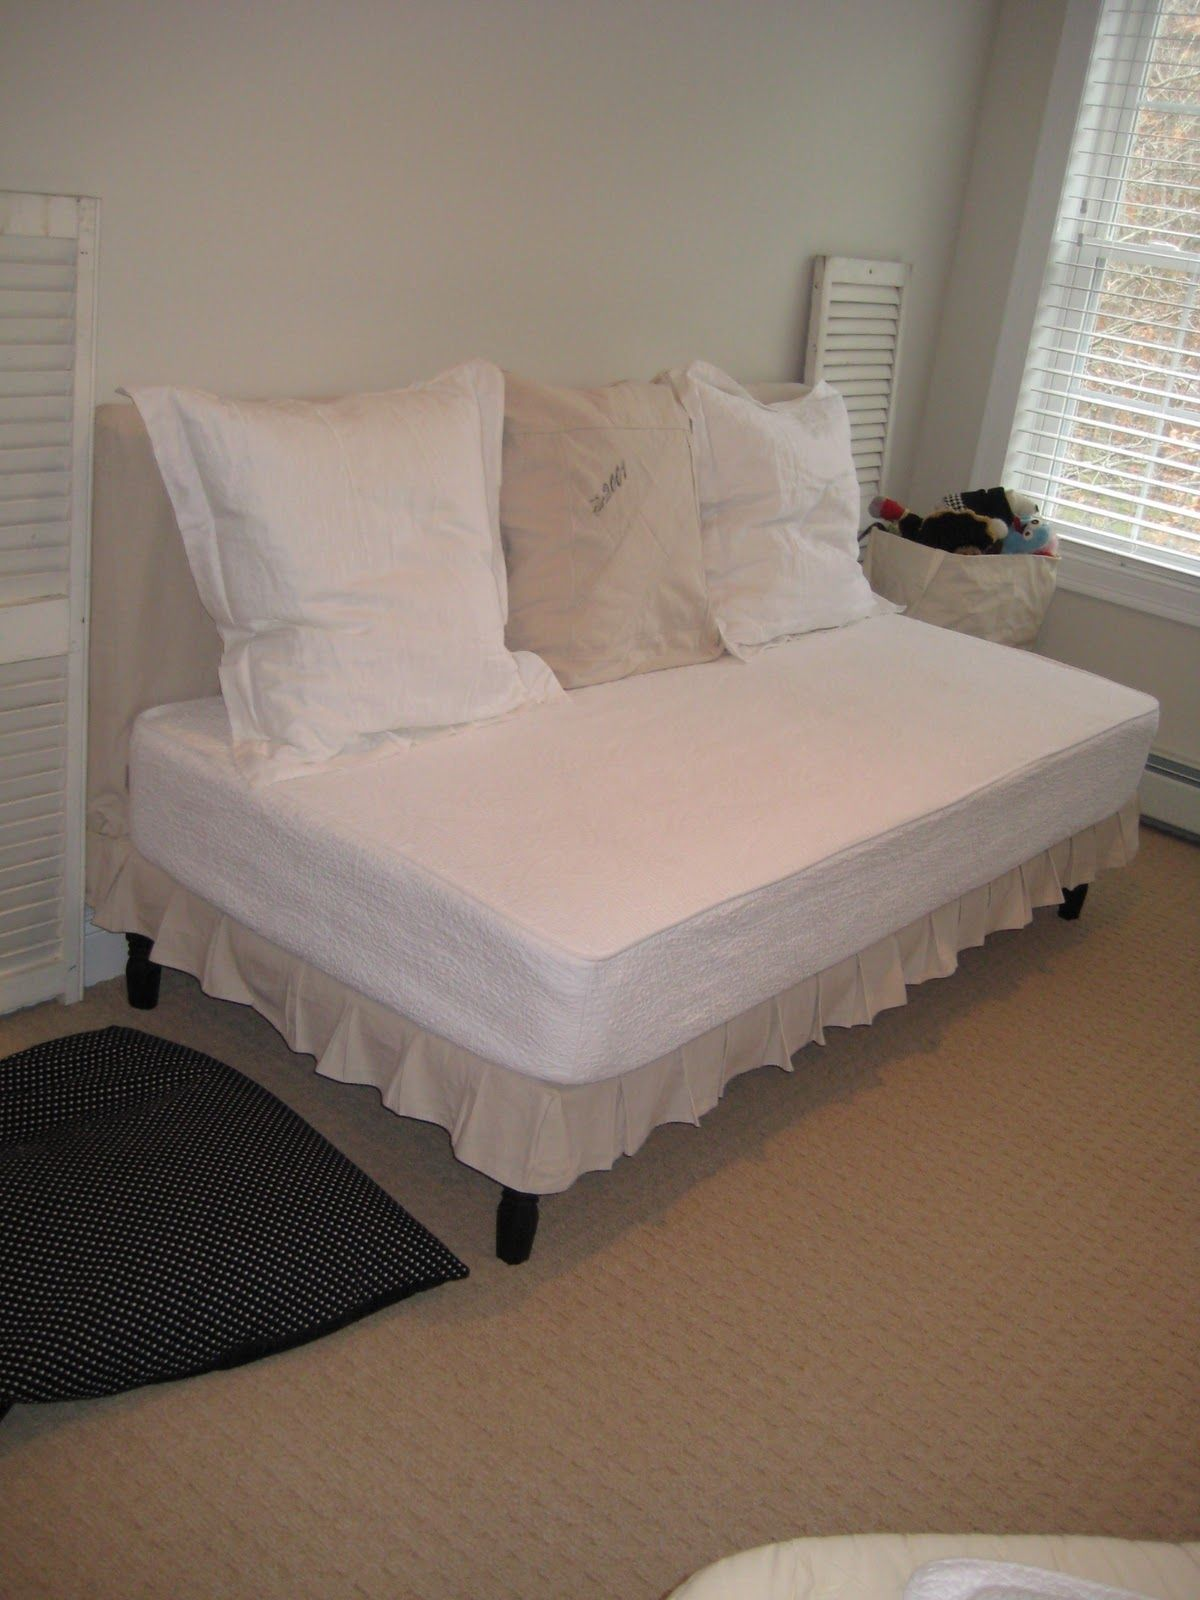 Deux Maison: Twin Sized Upholstered (slip-covered) daybed project completed!